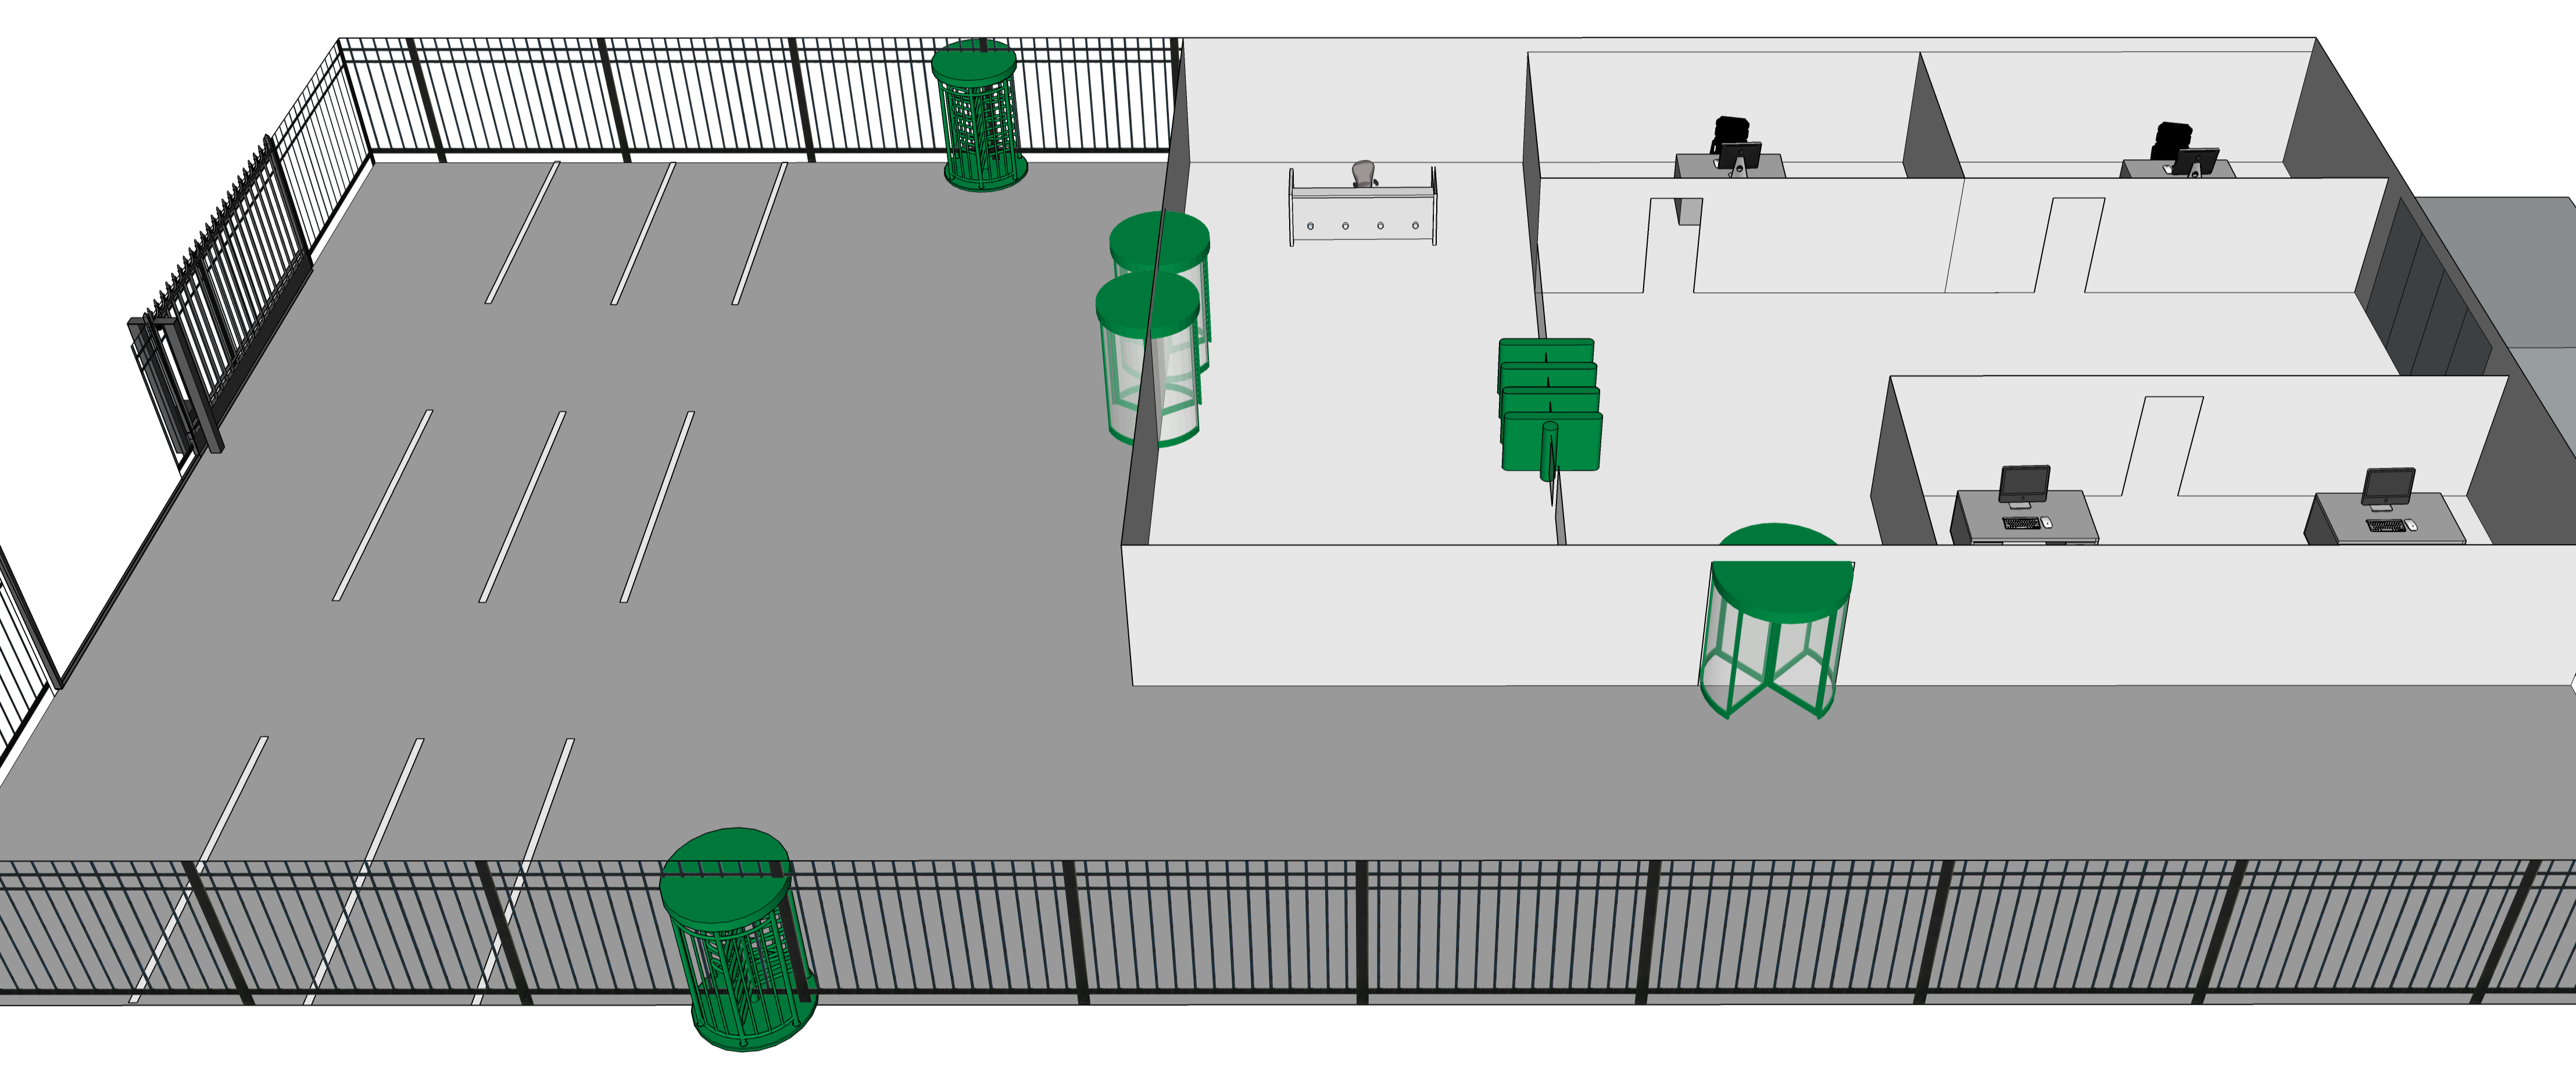 Physical Security in Layers: Turnstile Locations on a Corporate Campus